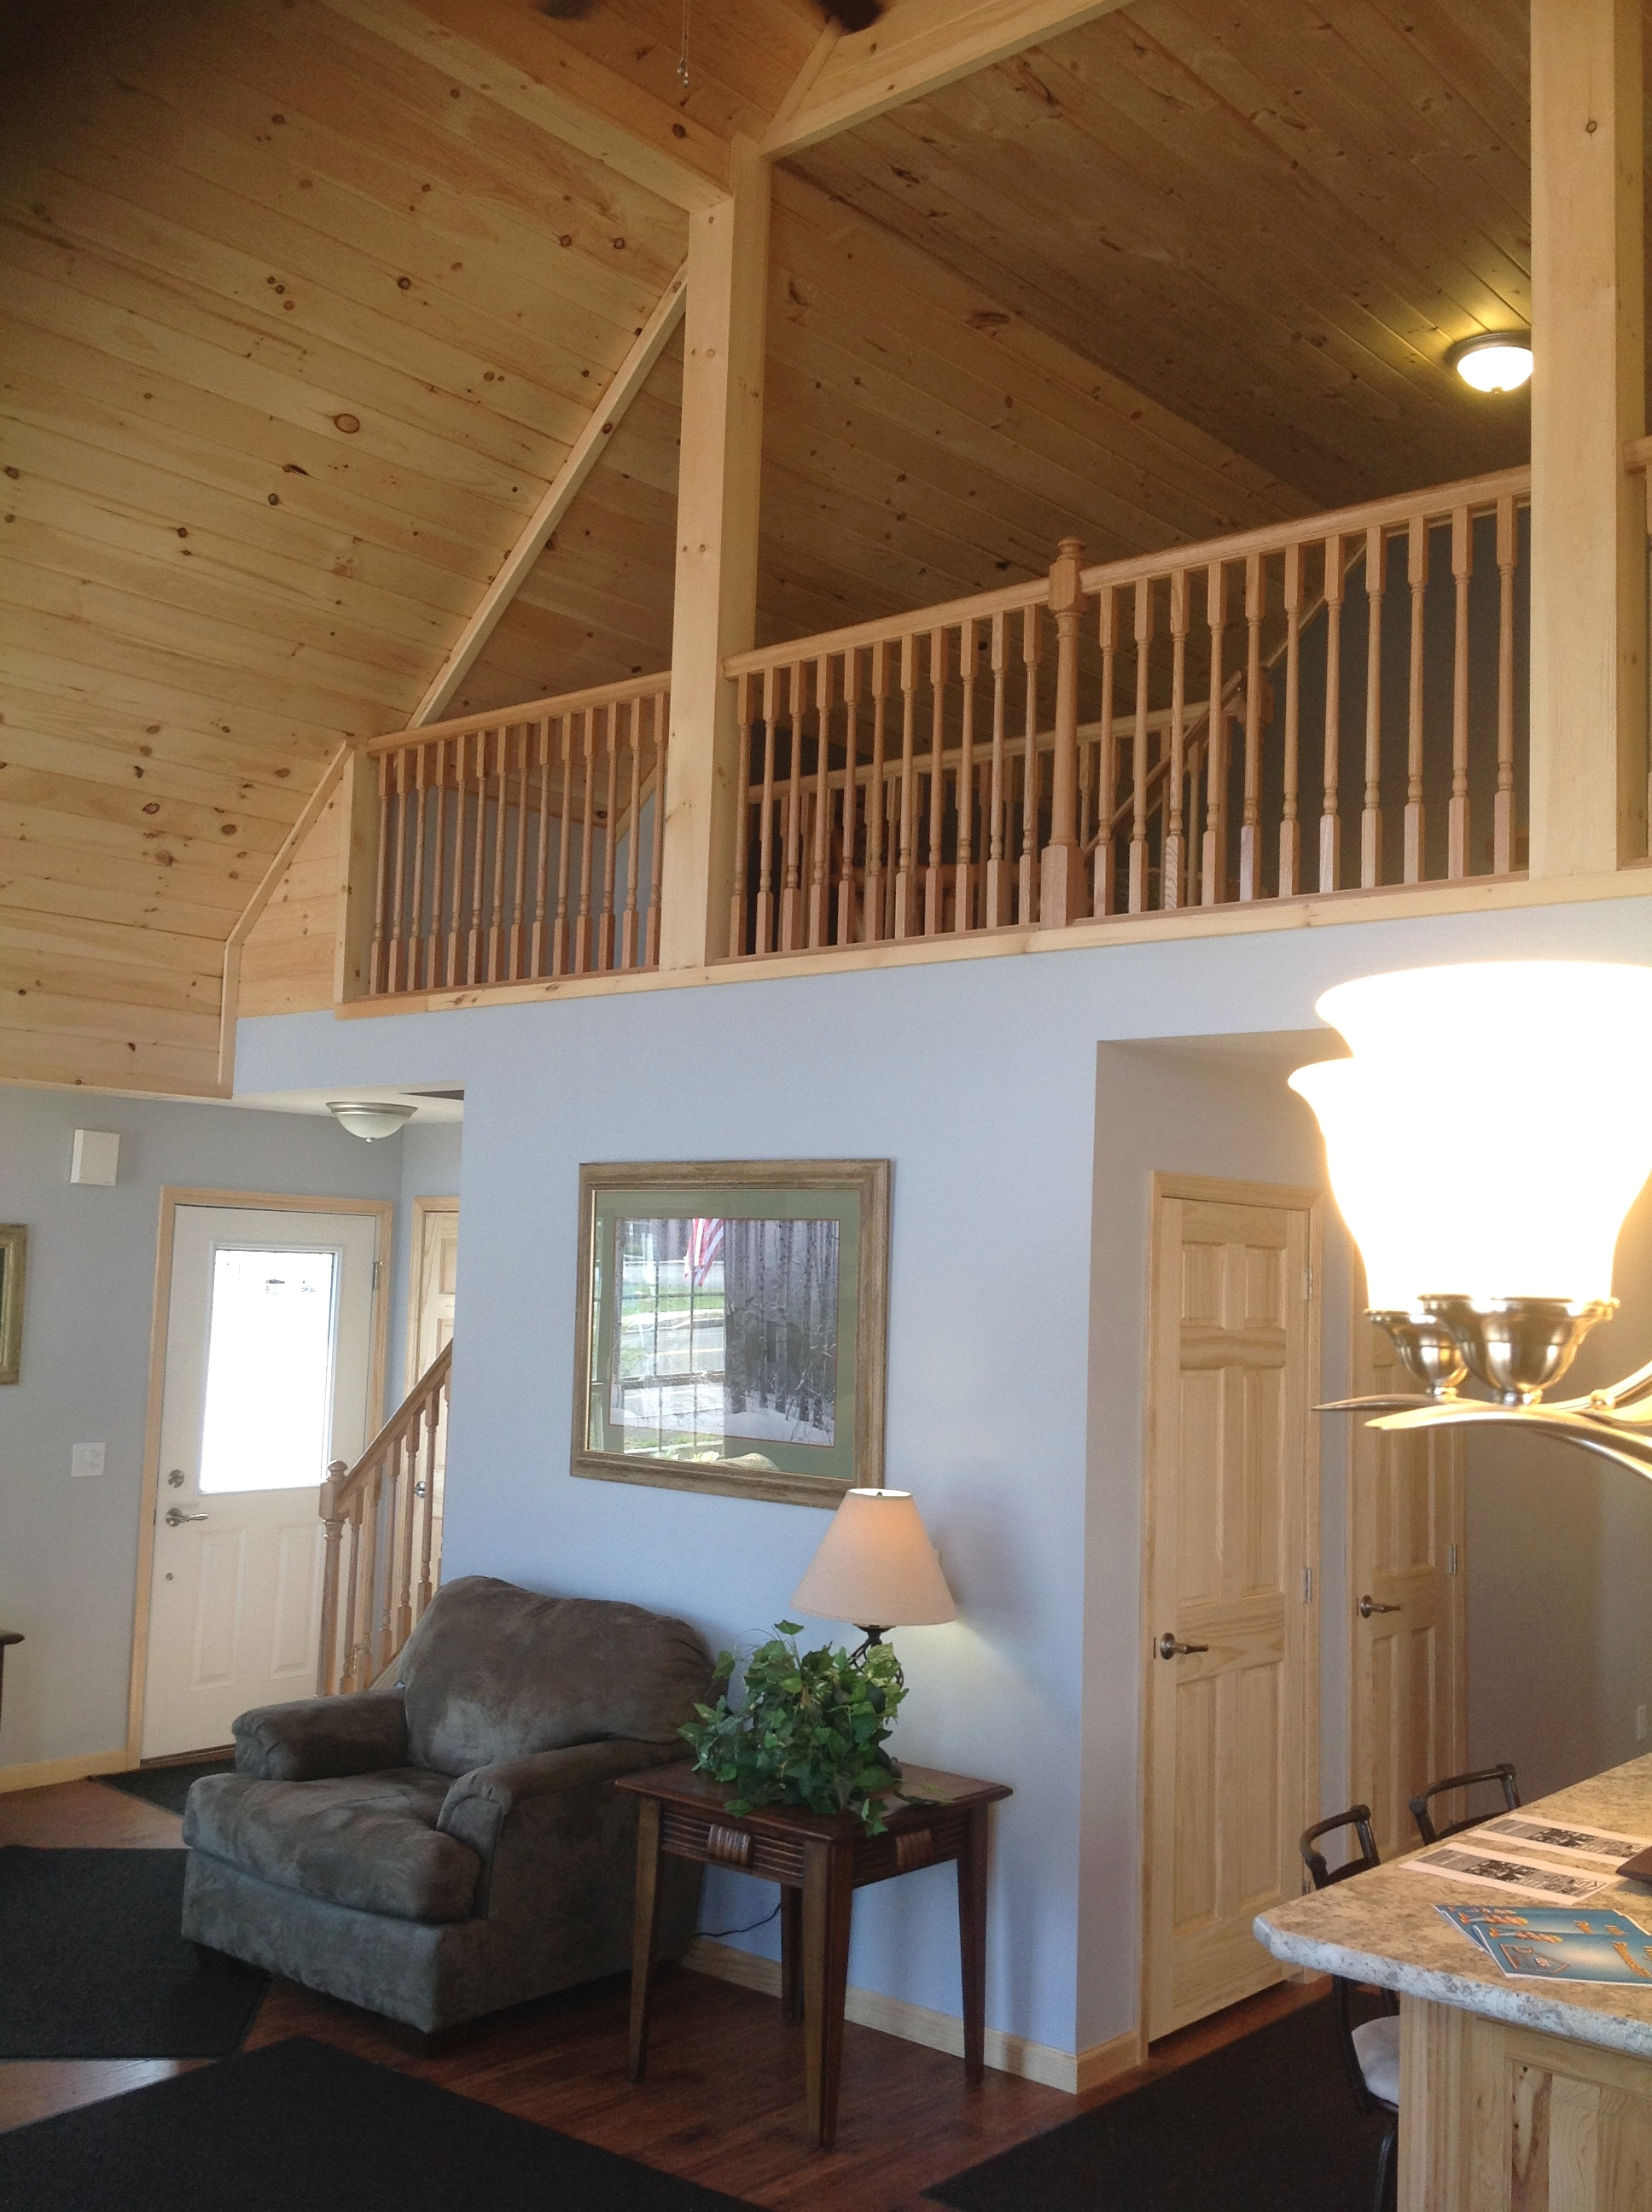 Vaulted loft with pine railing, overlooking living area.